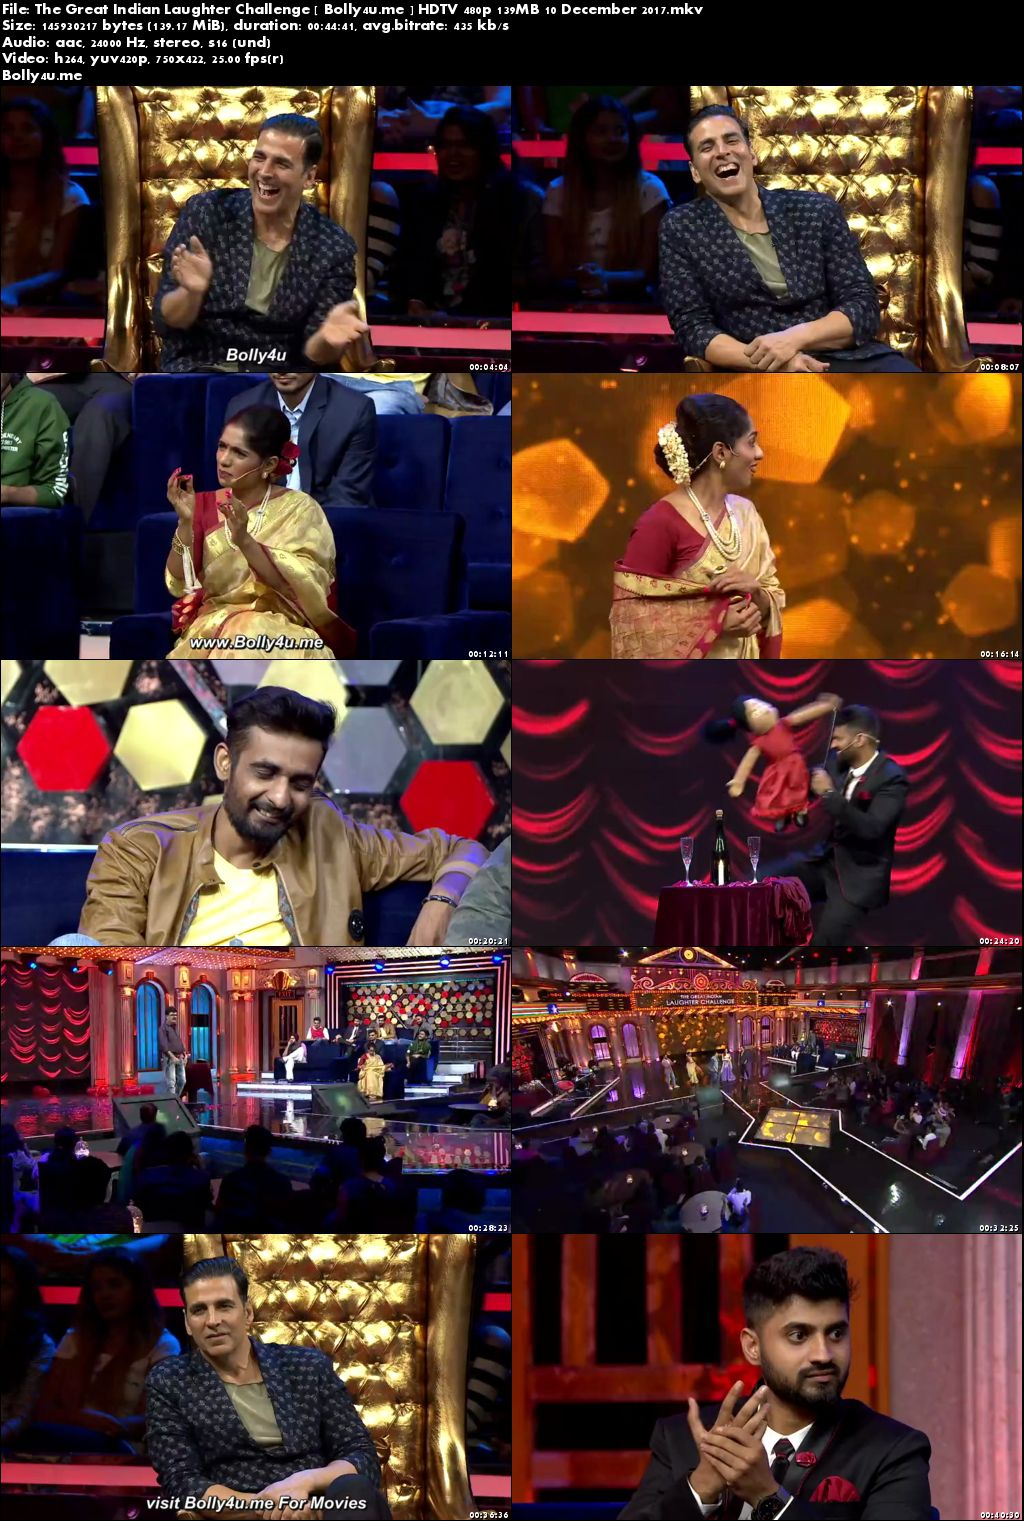 The Great Indian Laughter Challenge HDTV 480p 140MB 10 Dec 2017 Download